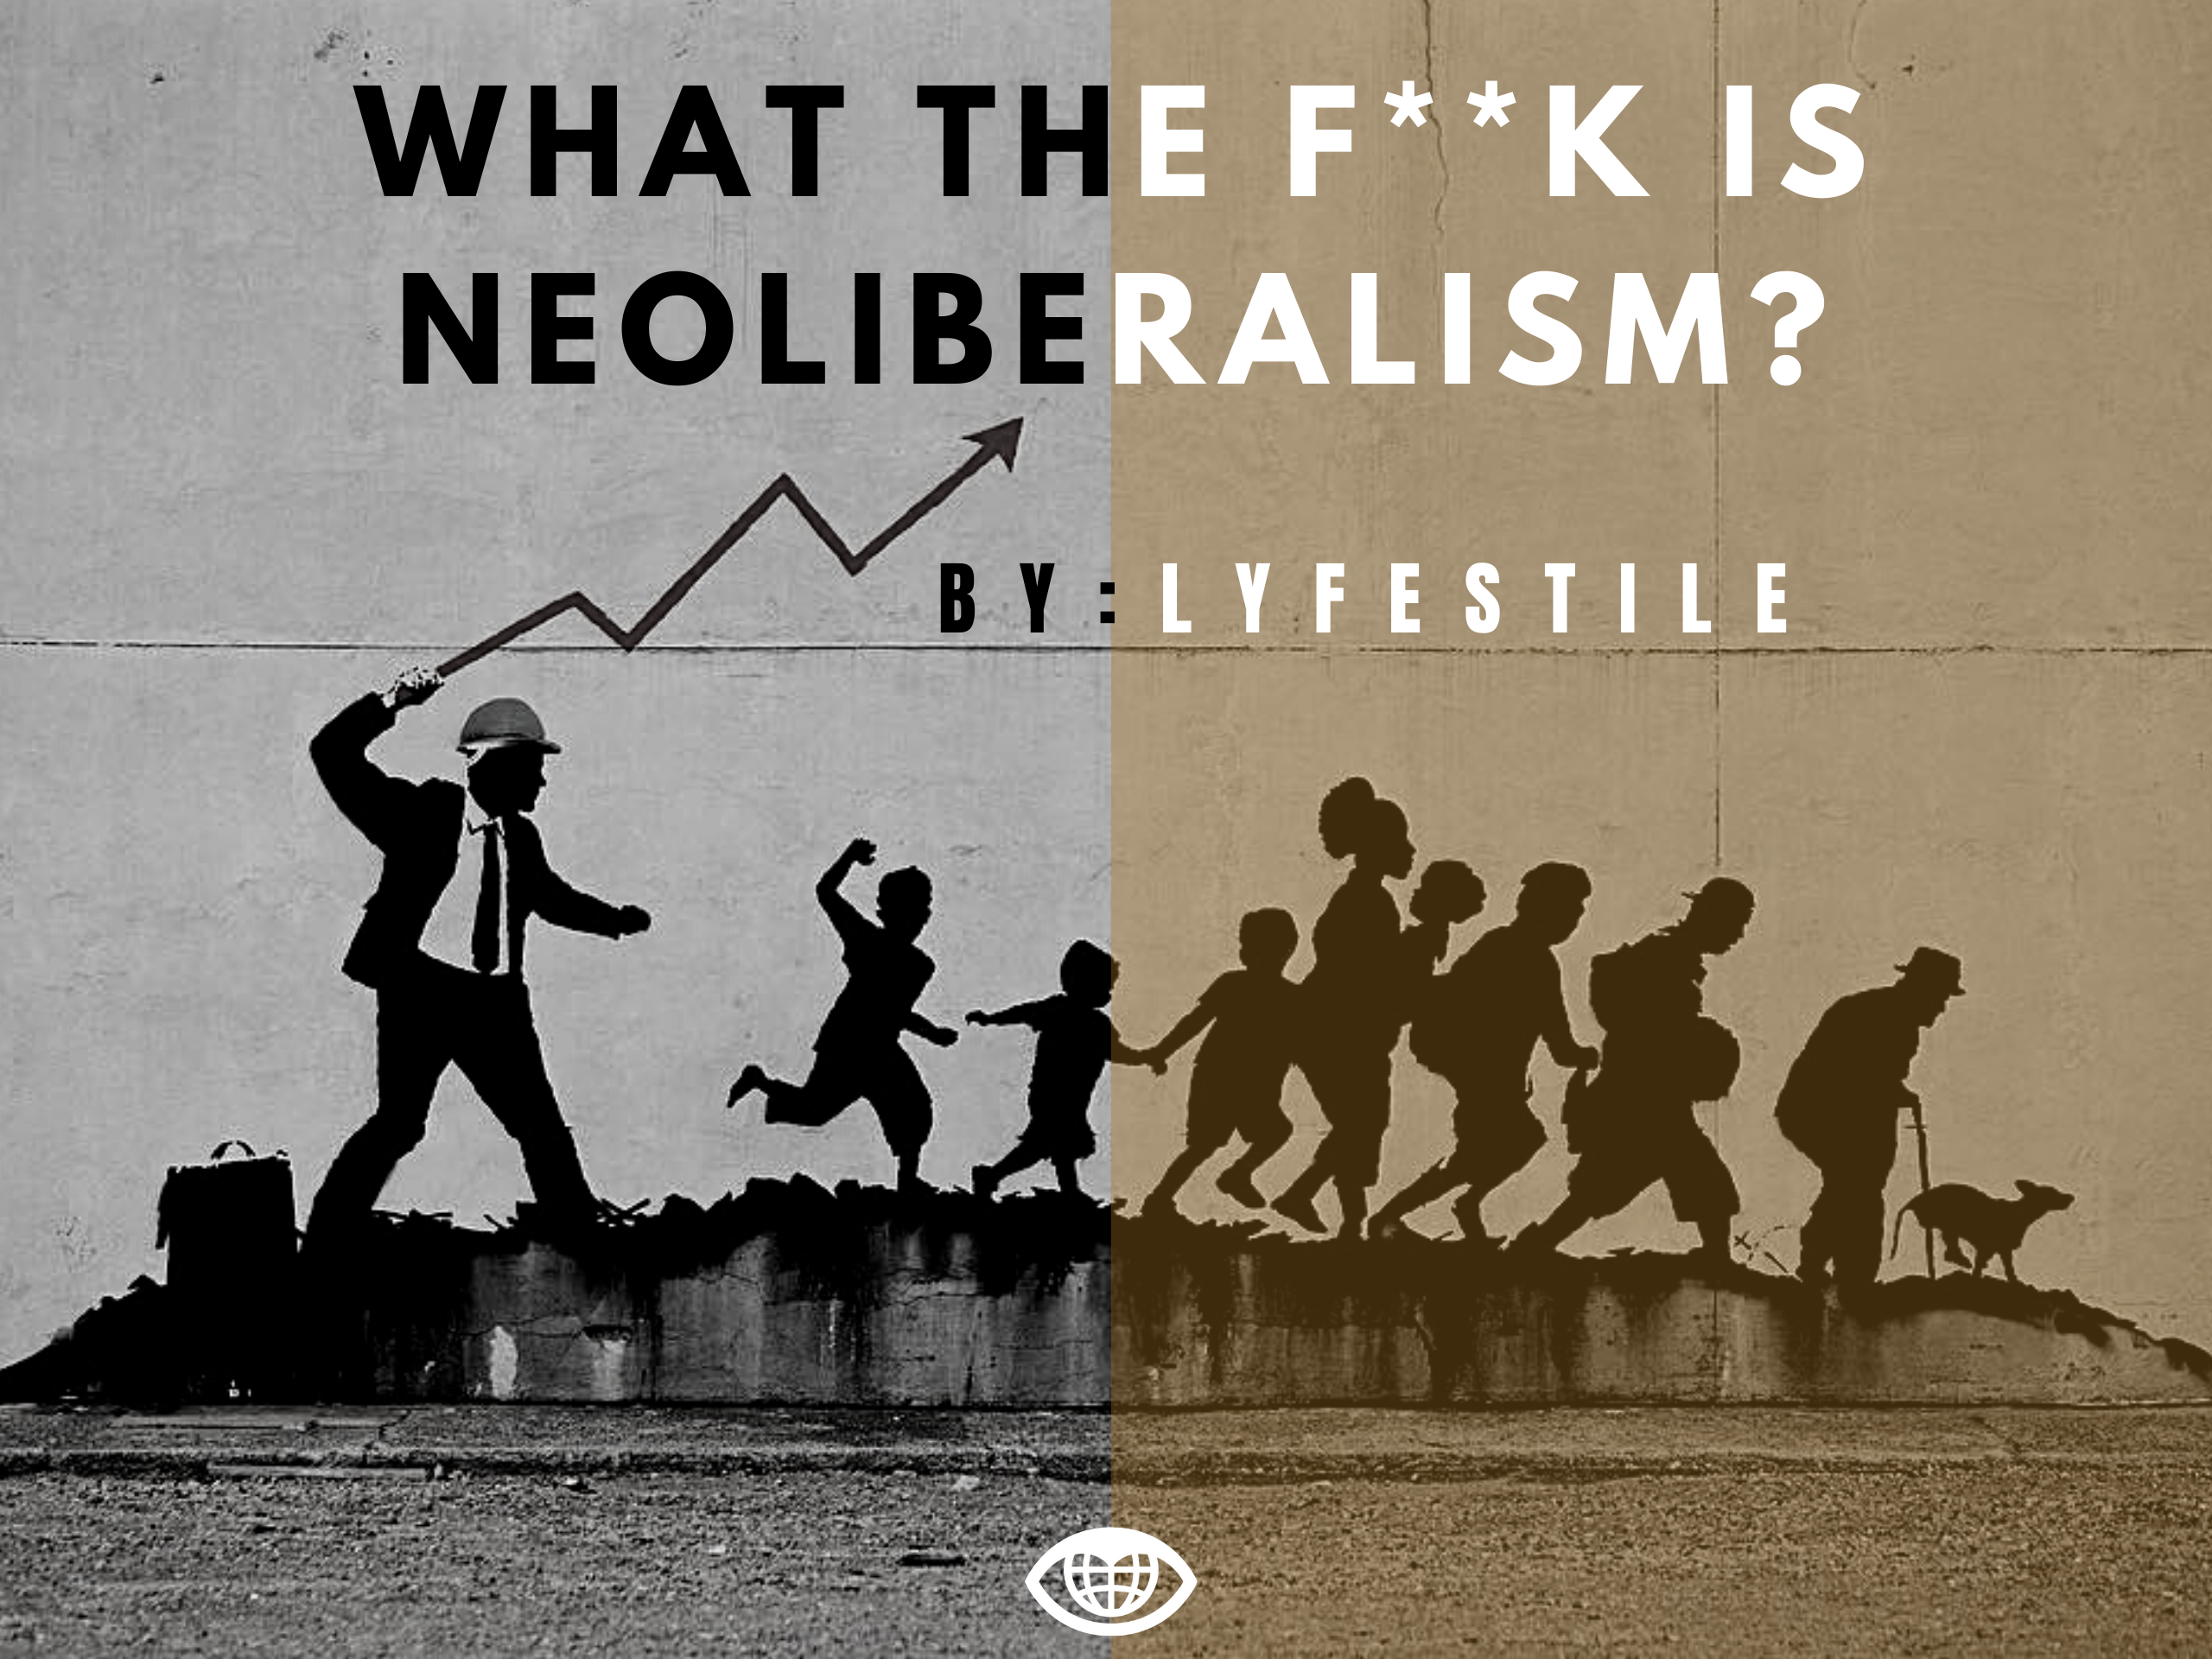 WHAT THE F**K IS NEOLIBERALISM?